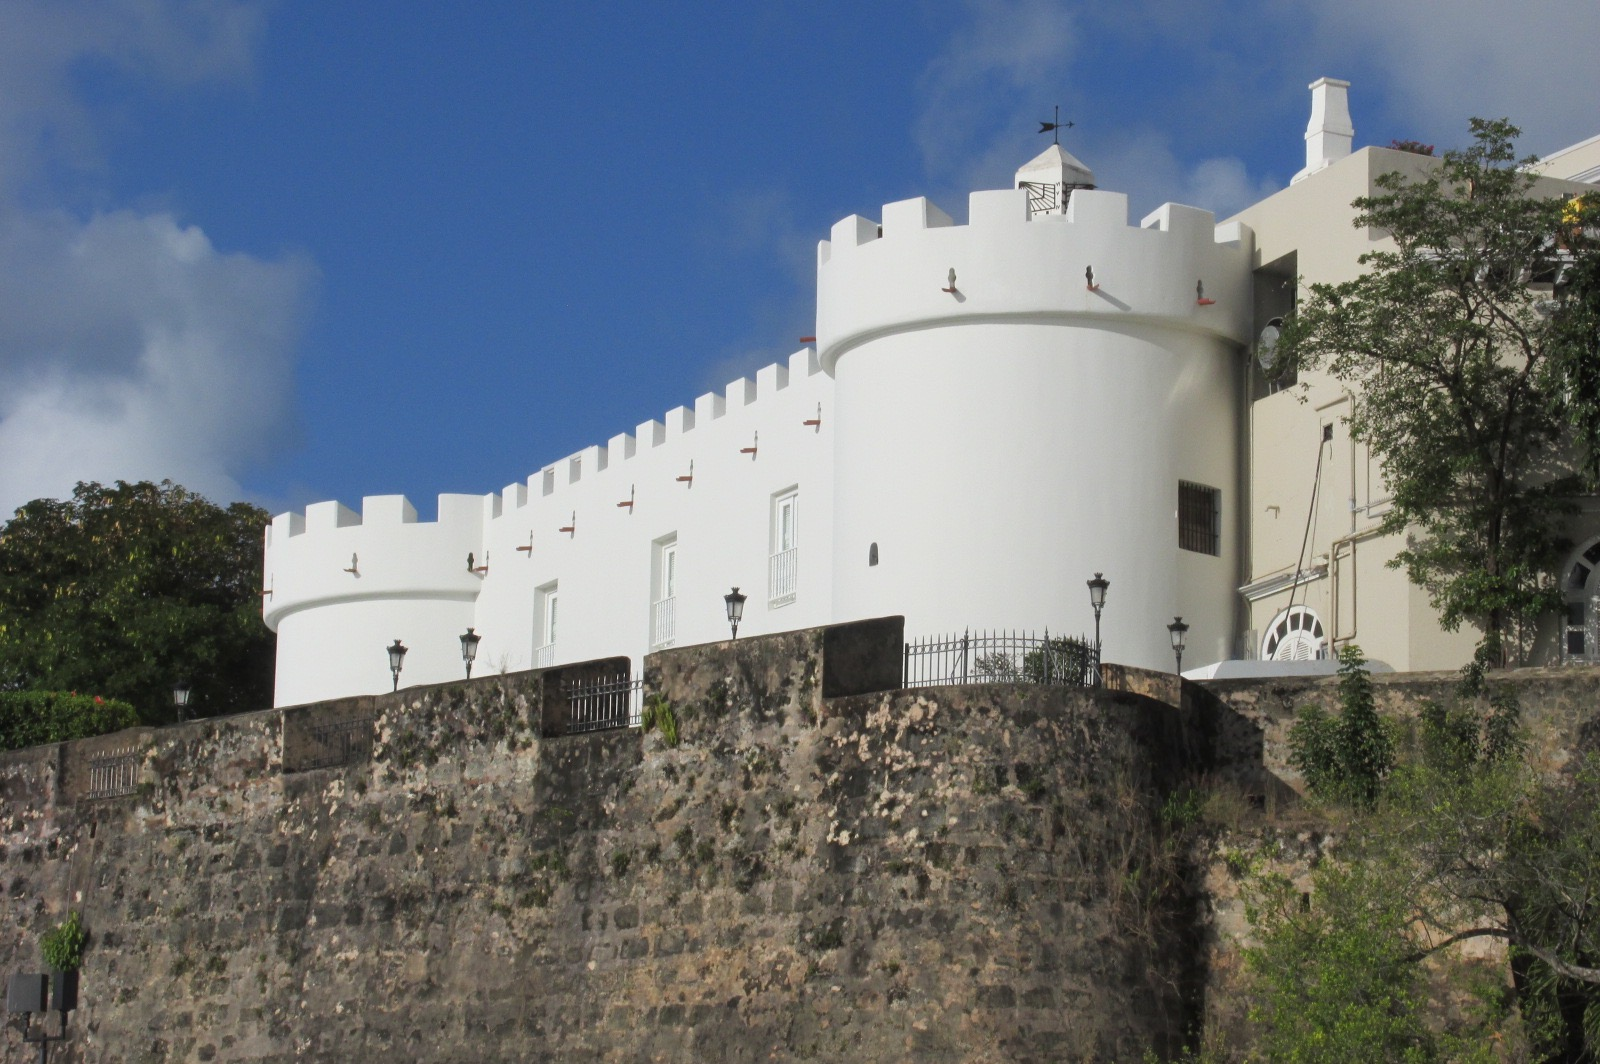 La Fortaleza, Governor's home and office